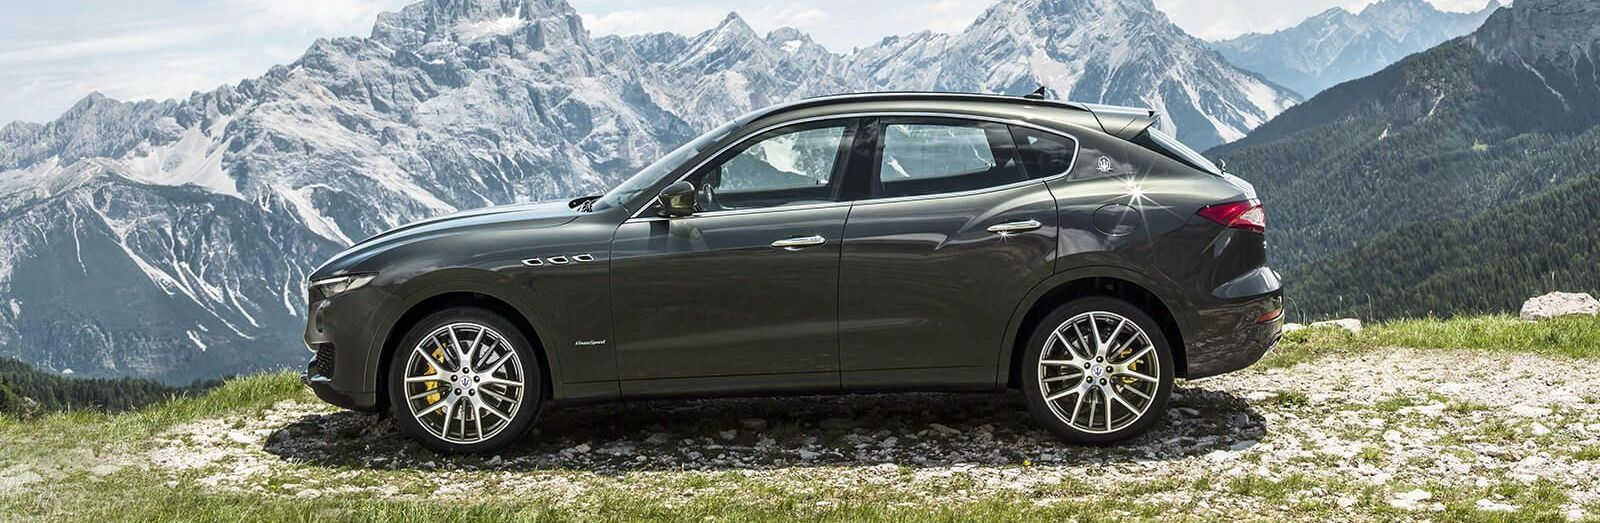 2018 maserati levante for sale in austin tx maserati of austin. Black Bedroom Furniture Sets. Home Design Ideas